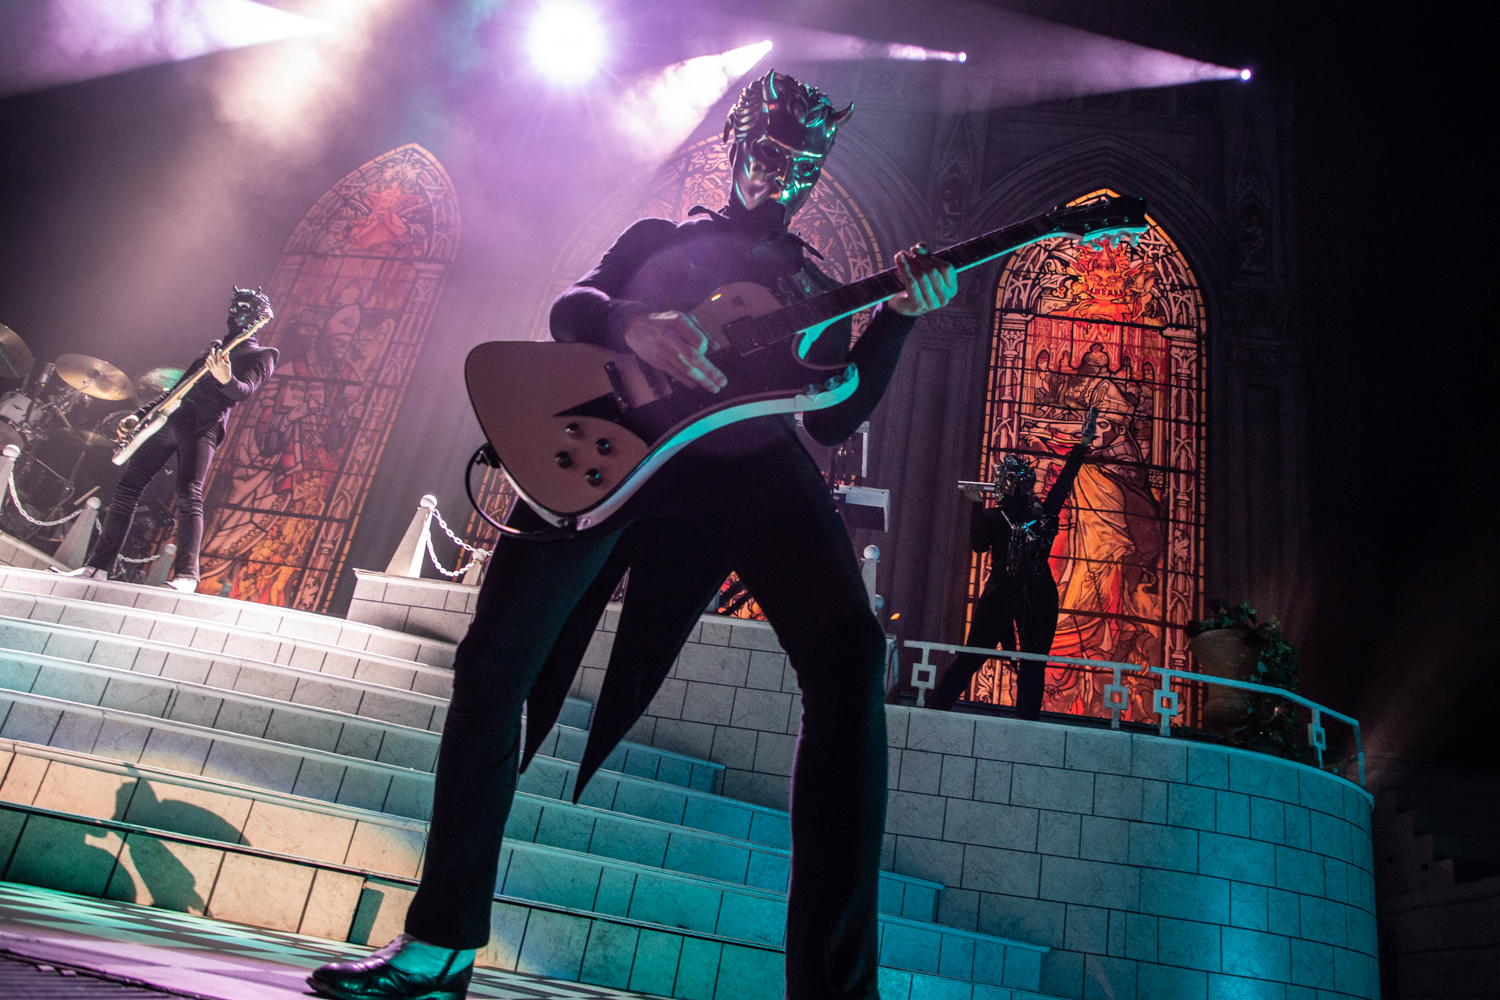 Ghost Barclays Center 2018 14 Live Review: Ghost Turn Brooklyns Barclays Center Into a House of Worship (12/15)